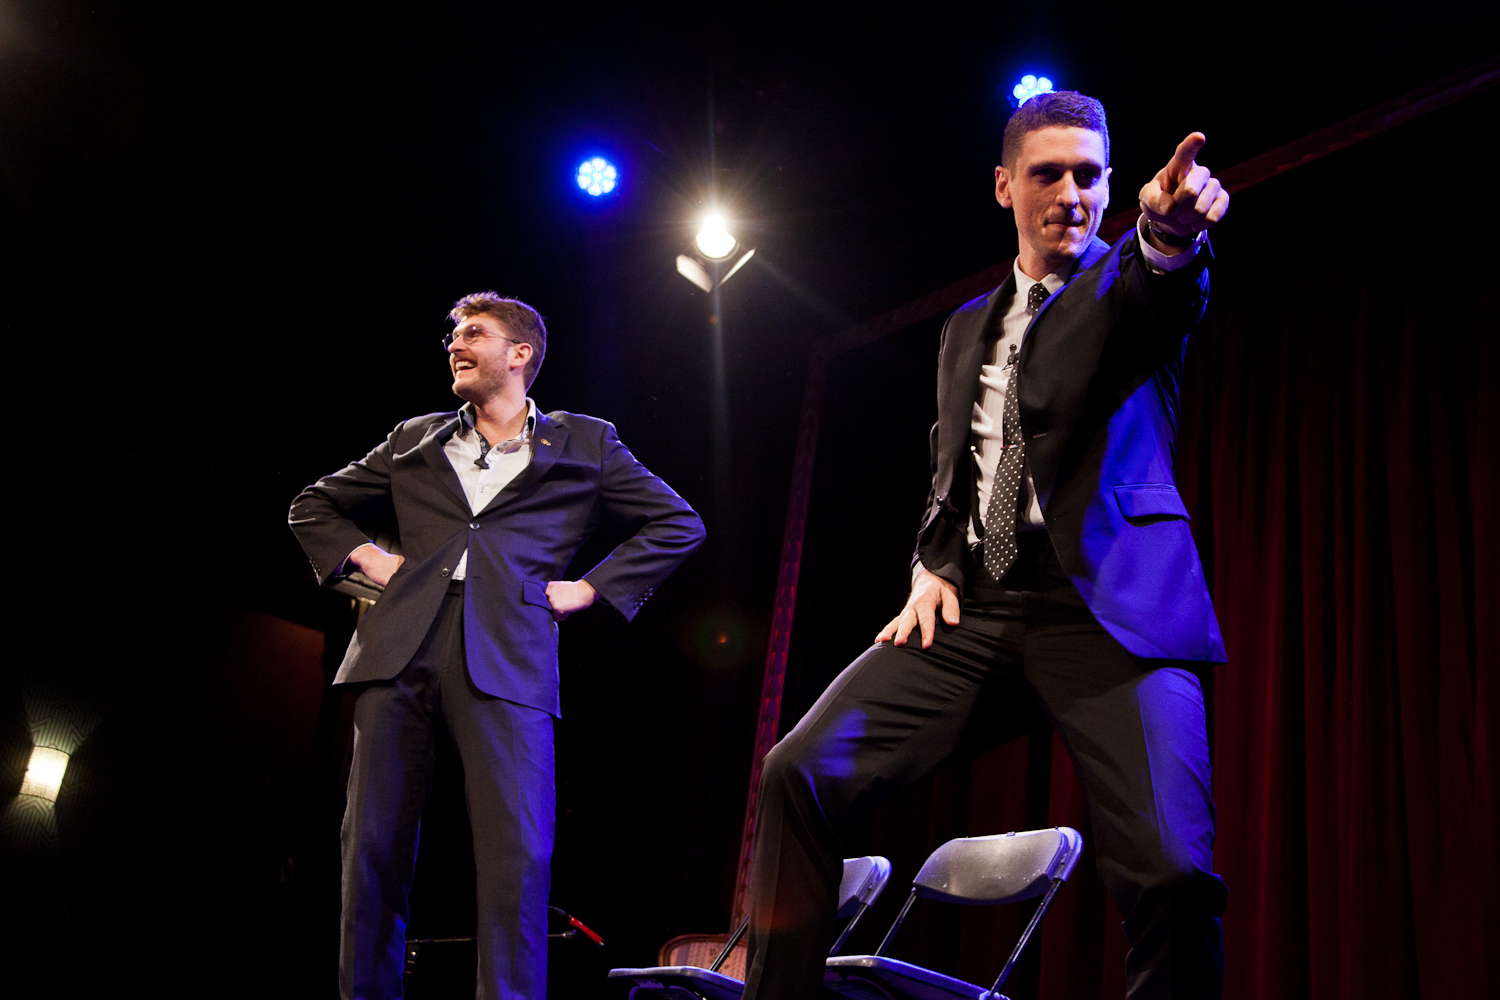 Carlo Ritchie and Steen Raskopoulos posing on stage, in suits.